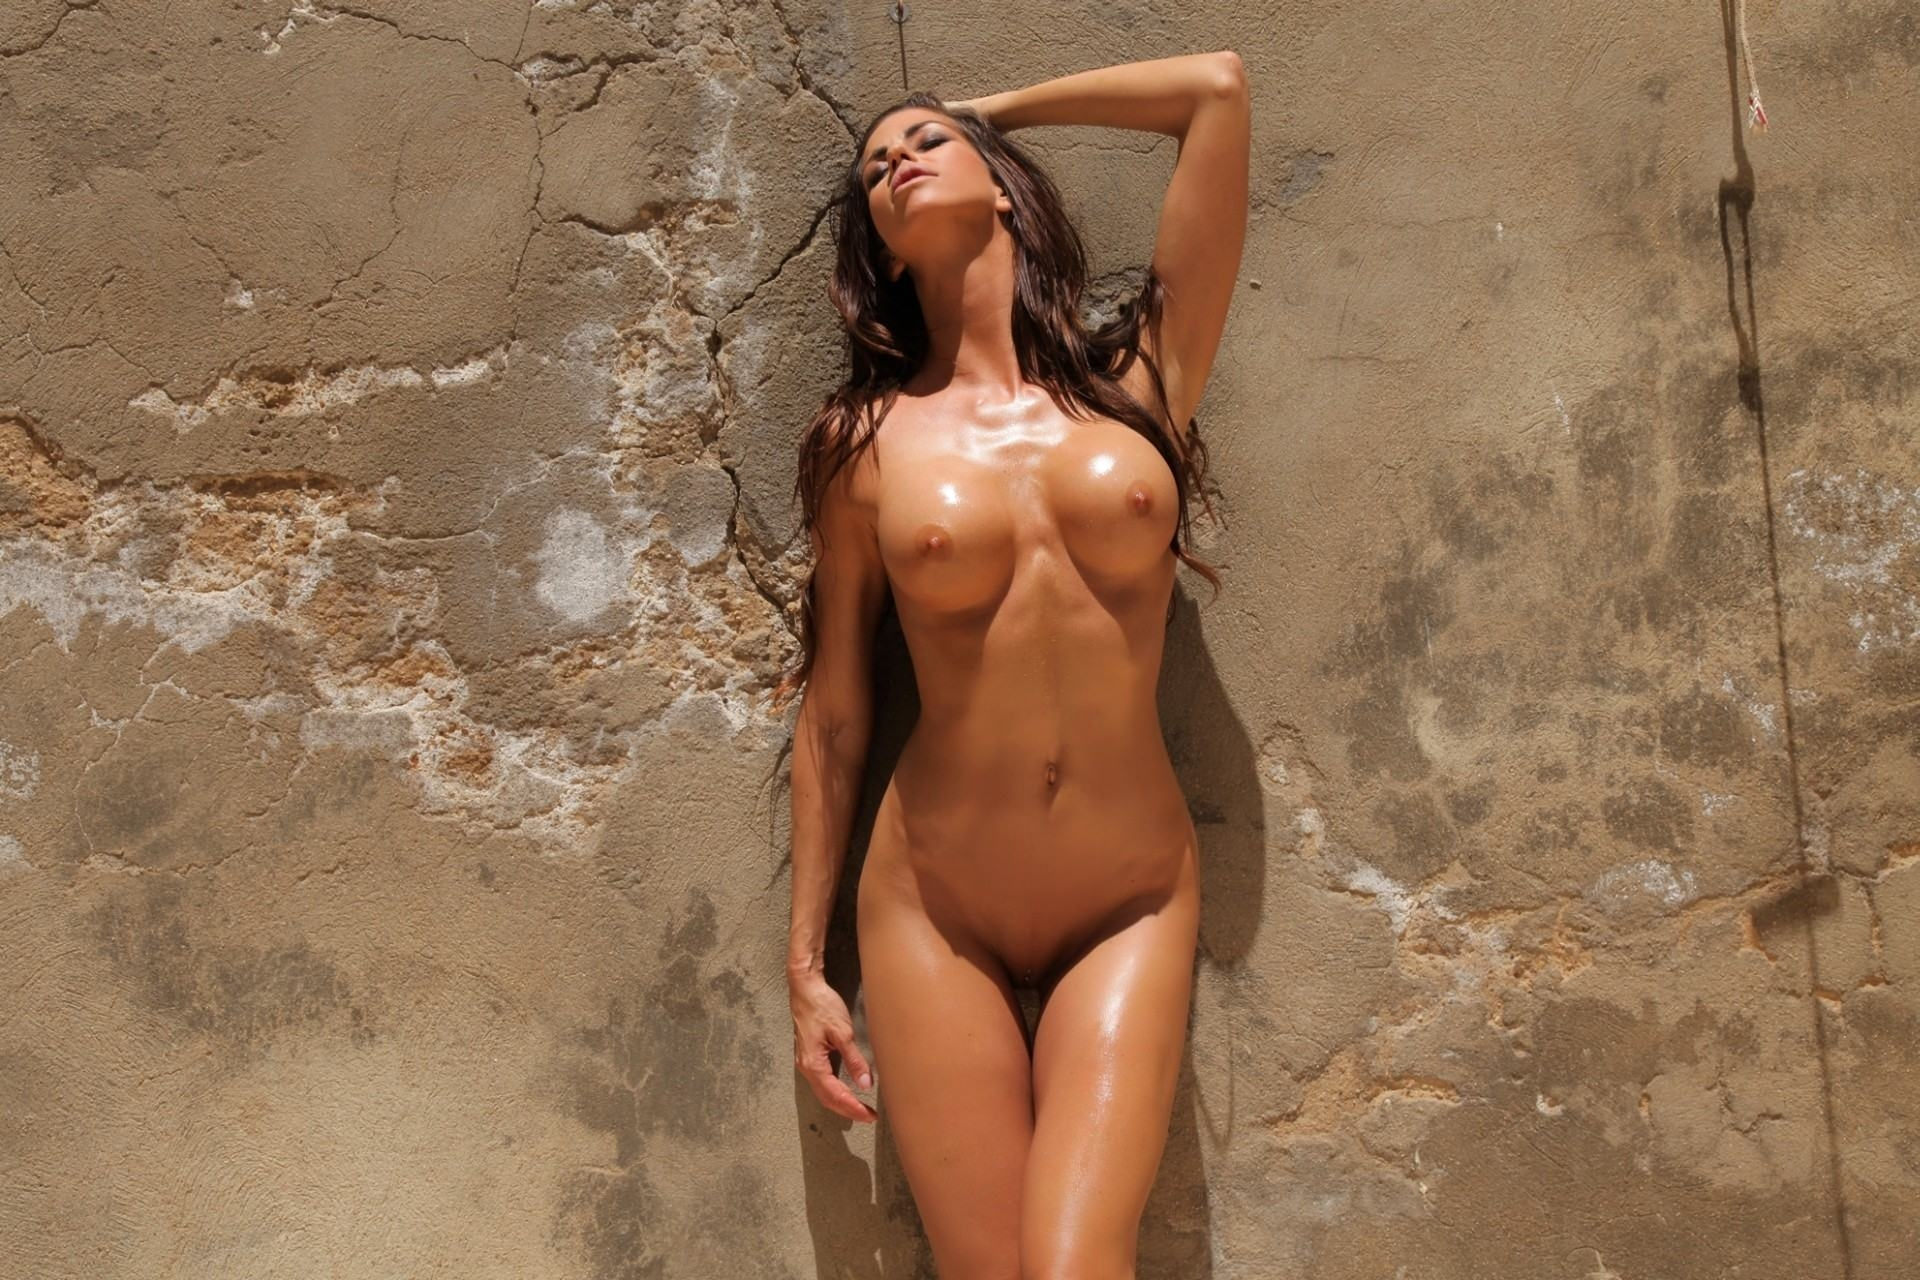 Best naked female body ever